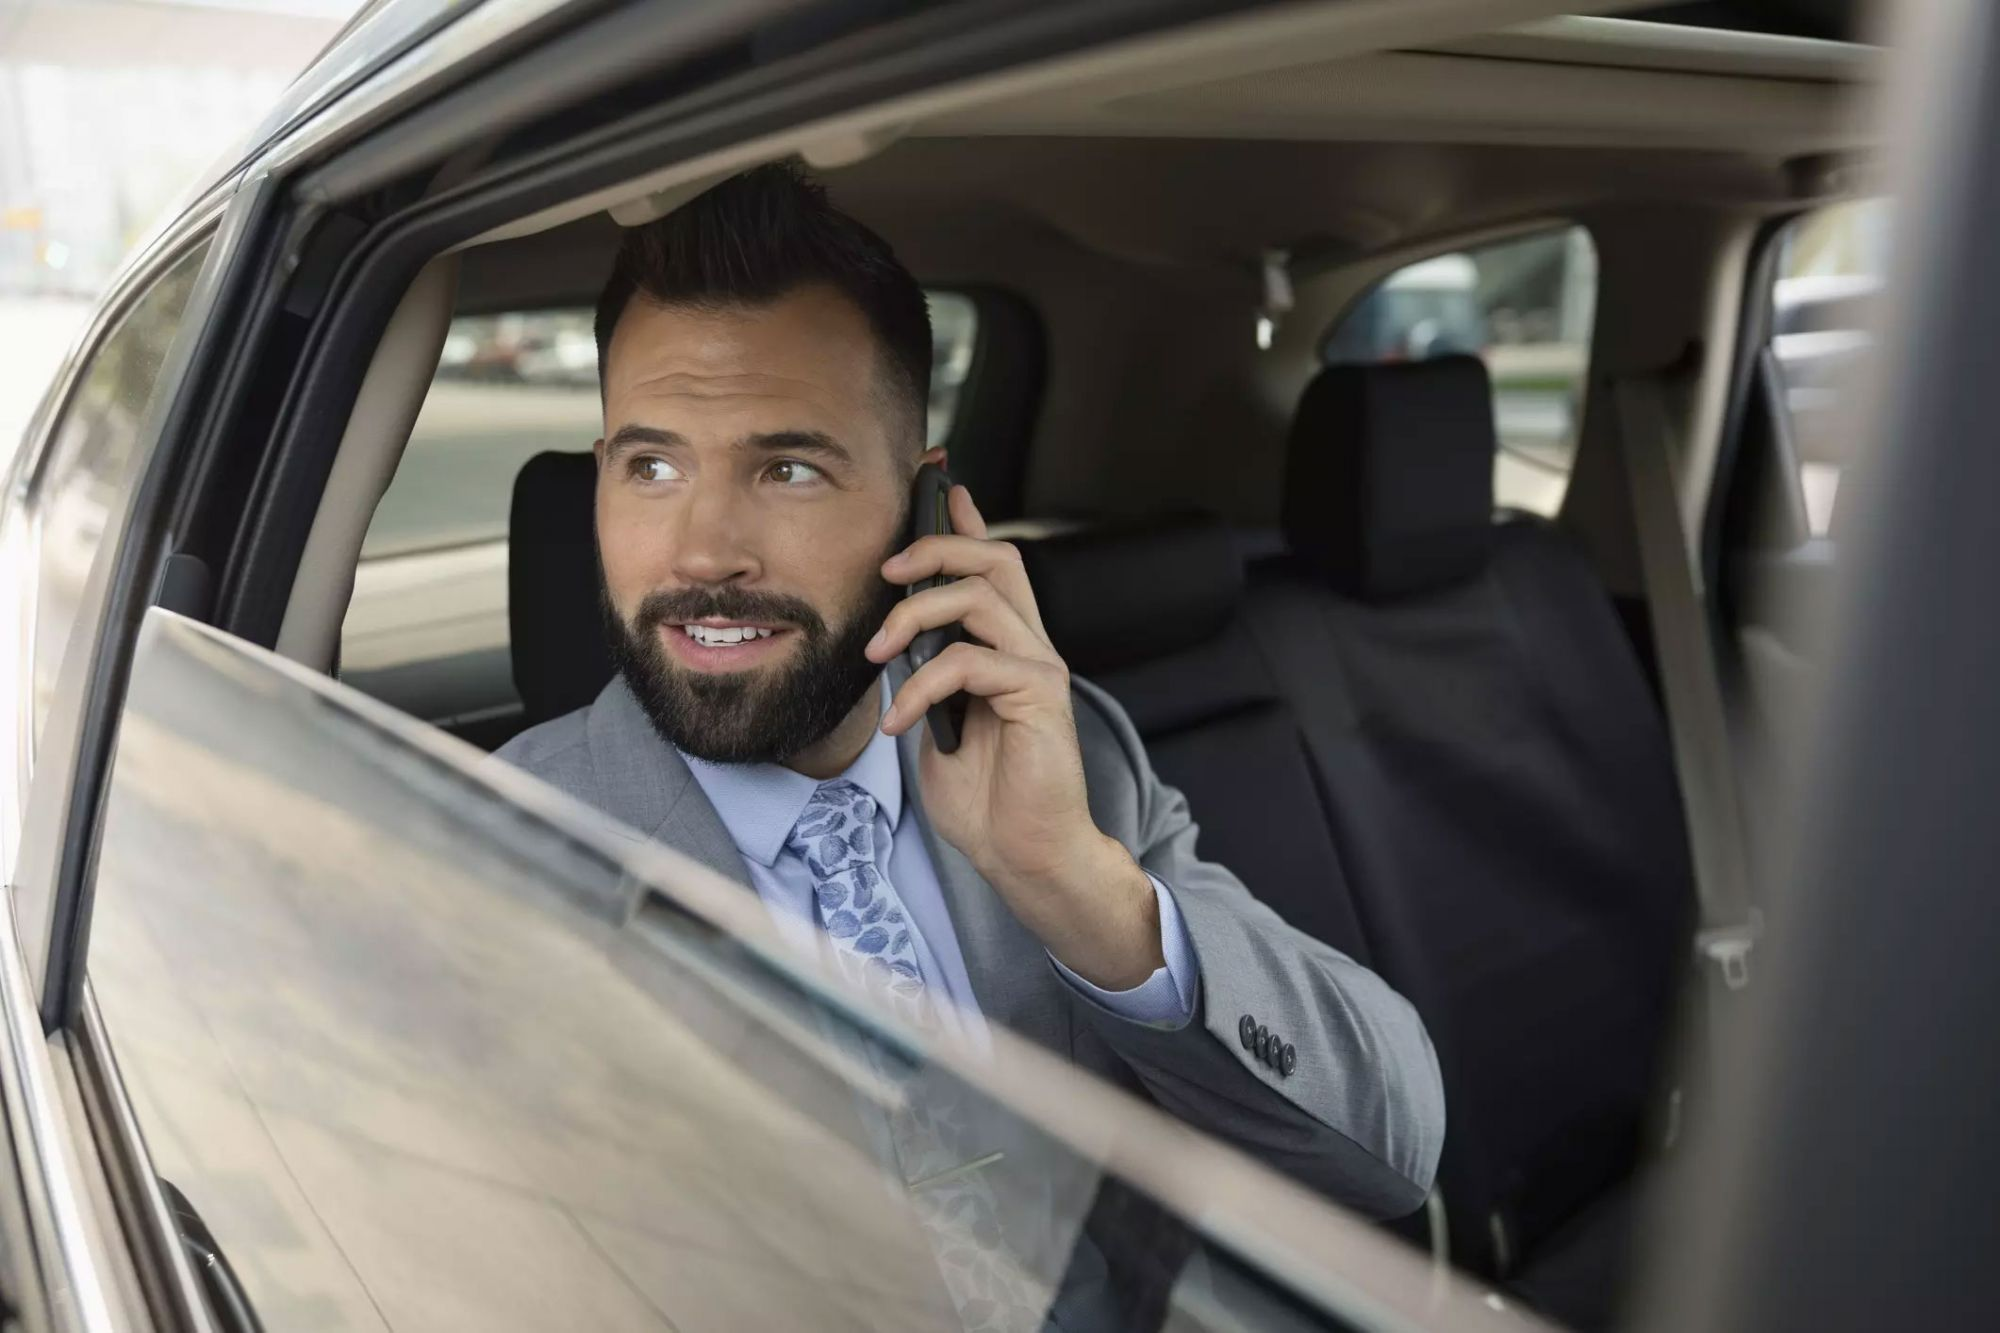 Uber Will Deactivate Riders With Low Ratings